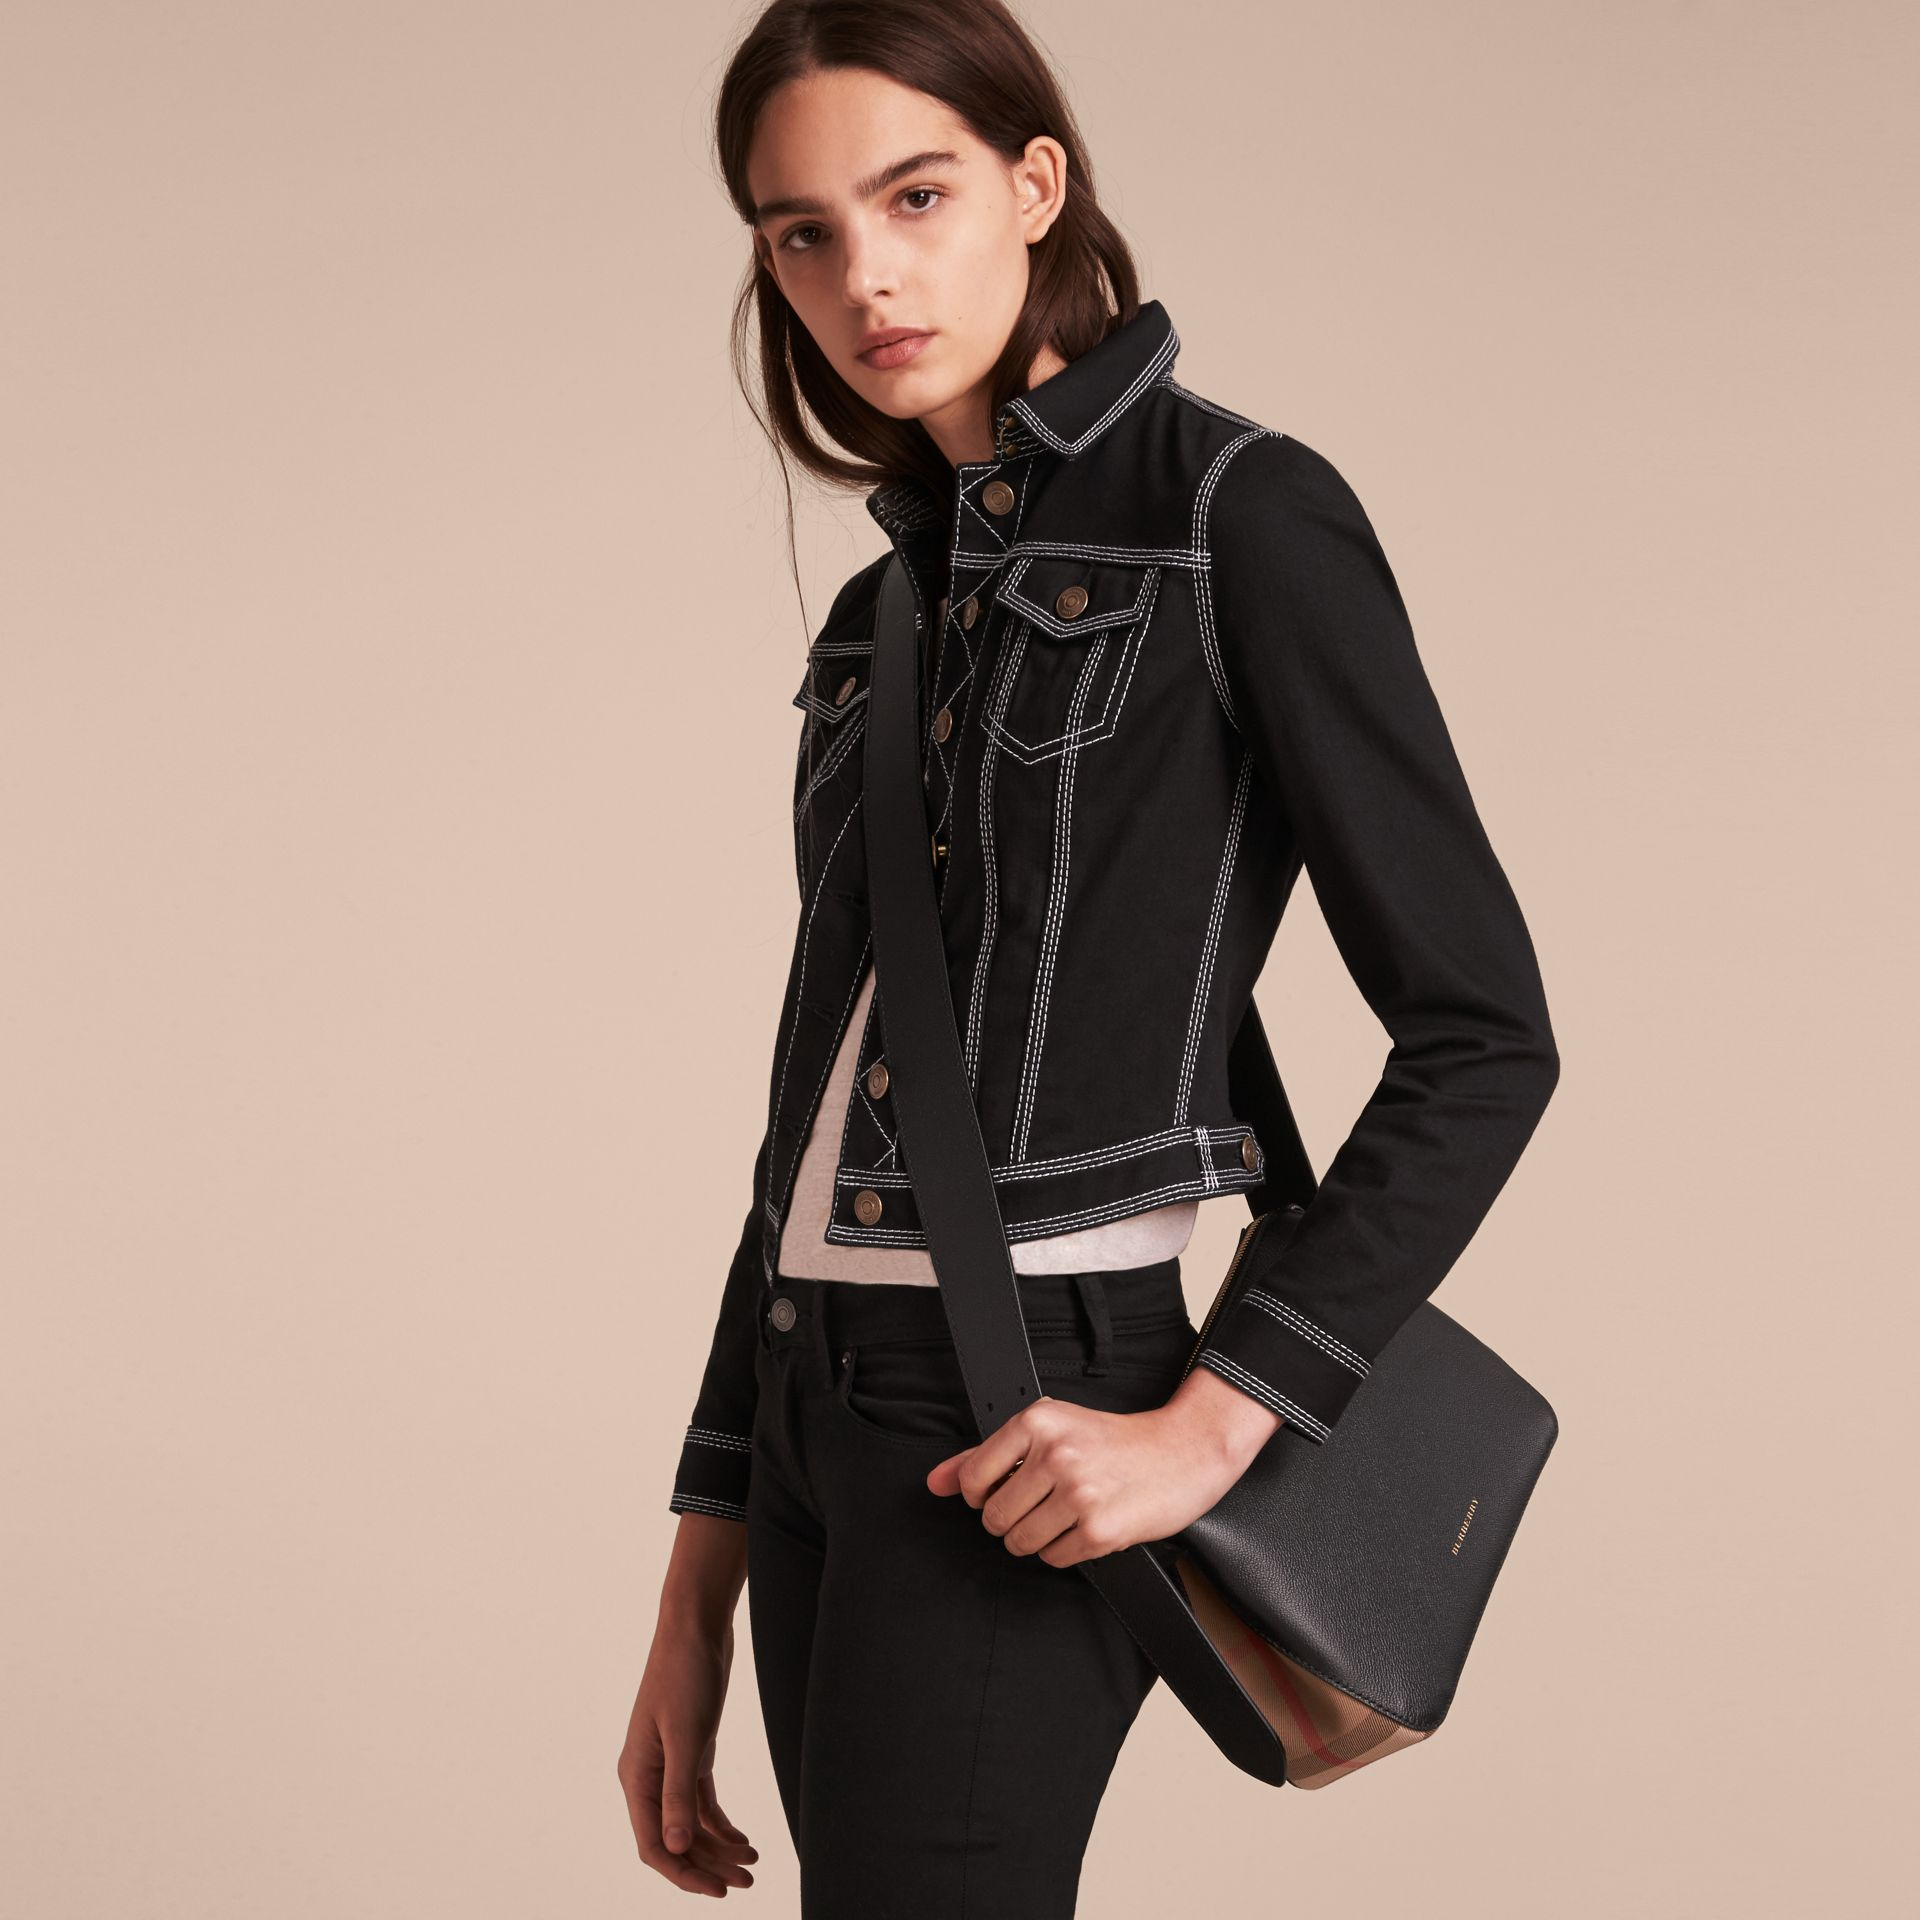 Buckle Detail Leather and House Check Crossbody Bag in Black - Women | Burberry Canada - gallery image 3